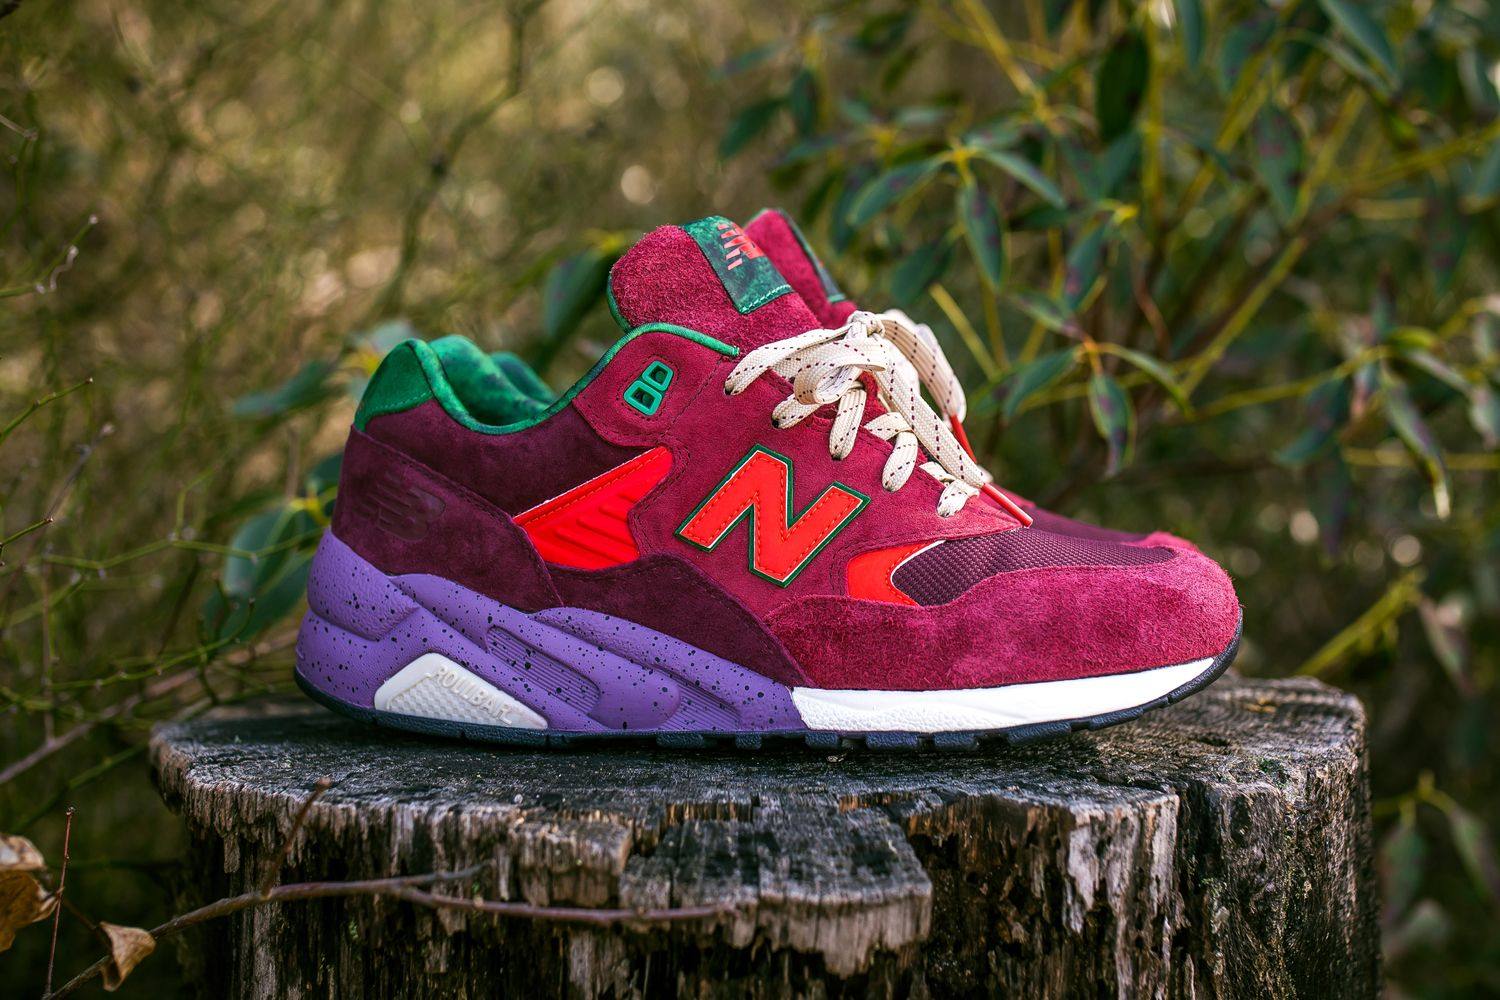 Packer X New Balance Mt 580